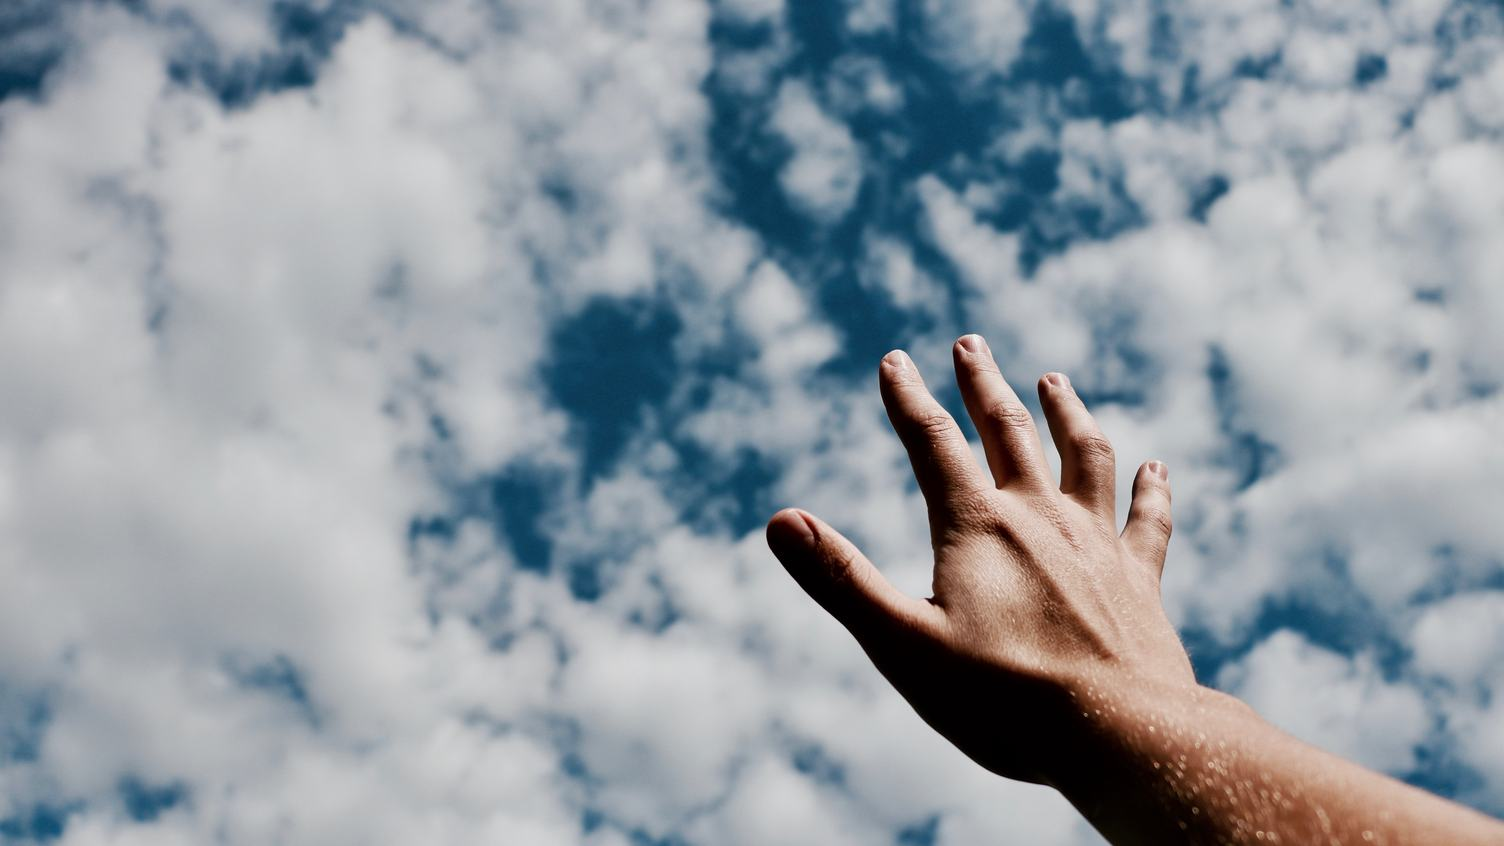 Human Hand against Blue Sky with Clouds